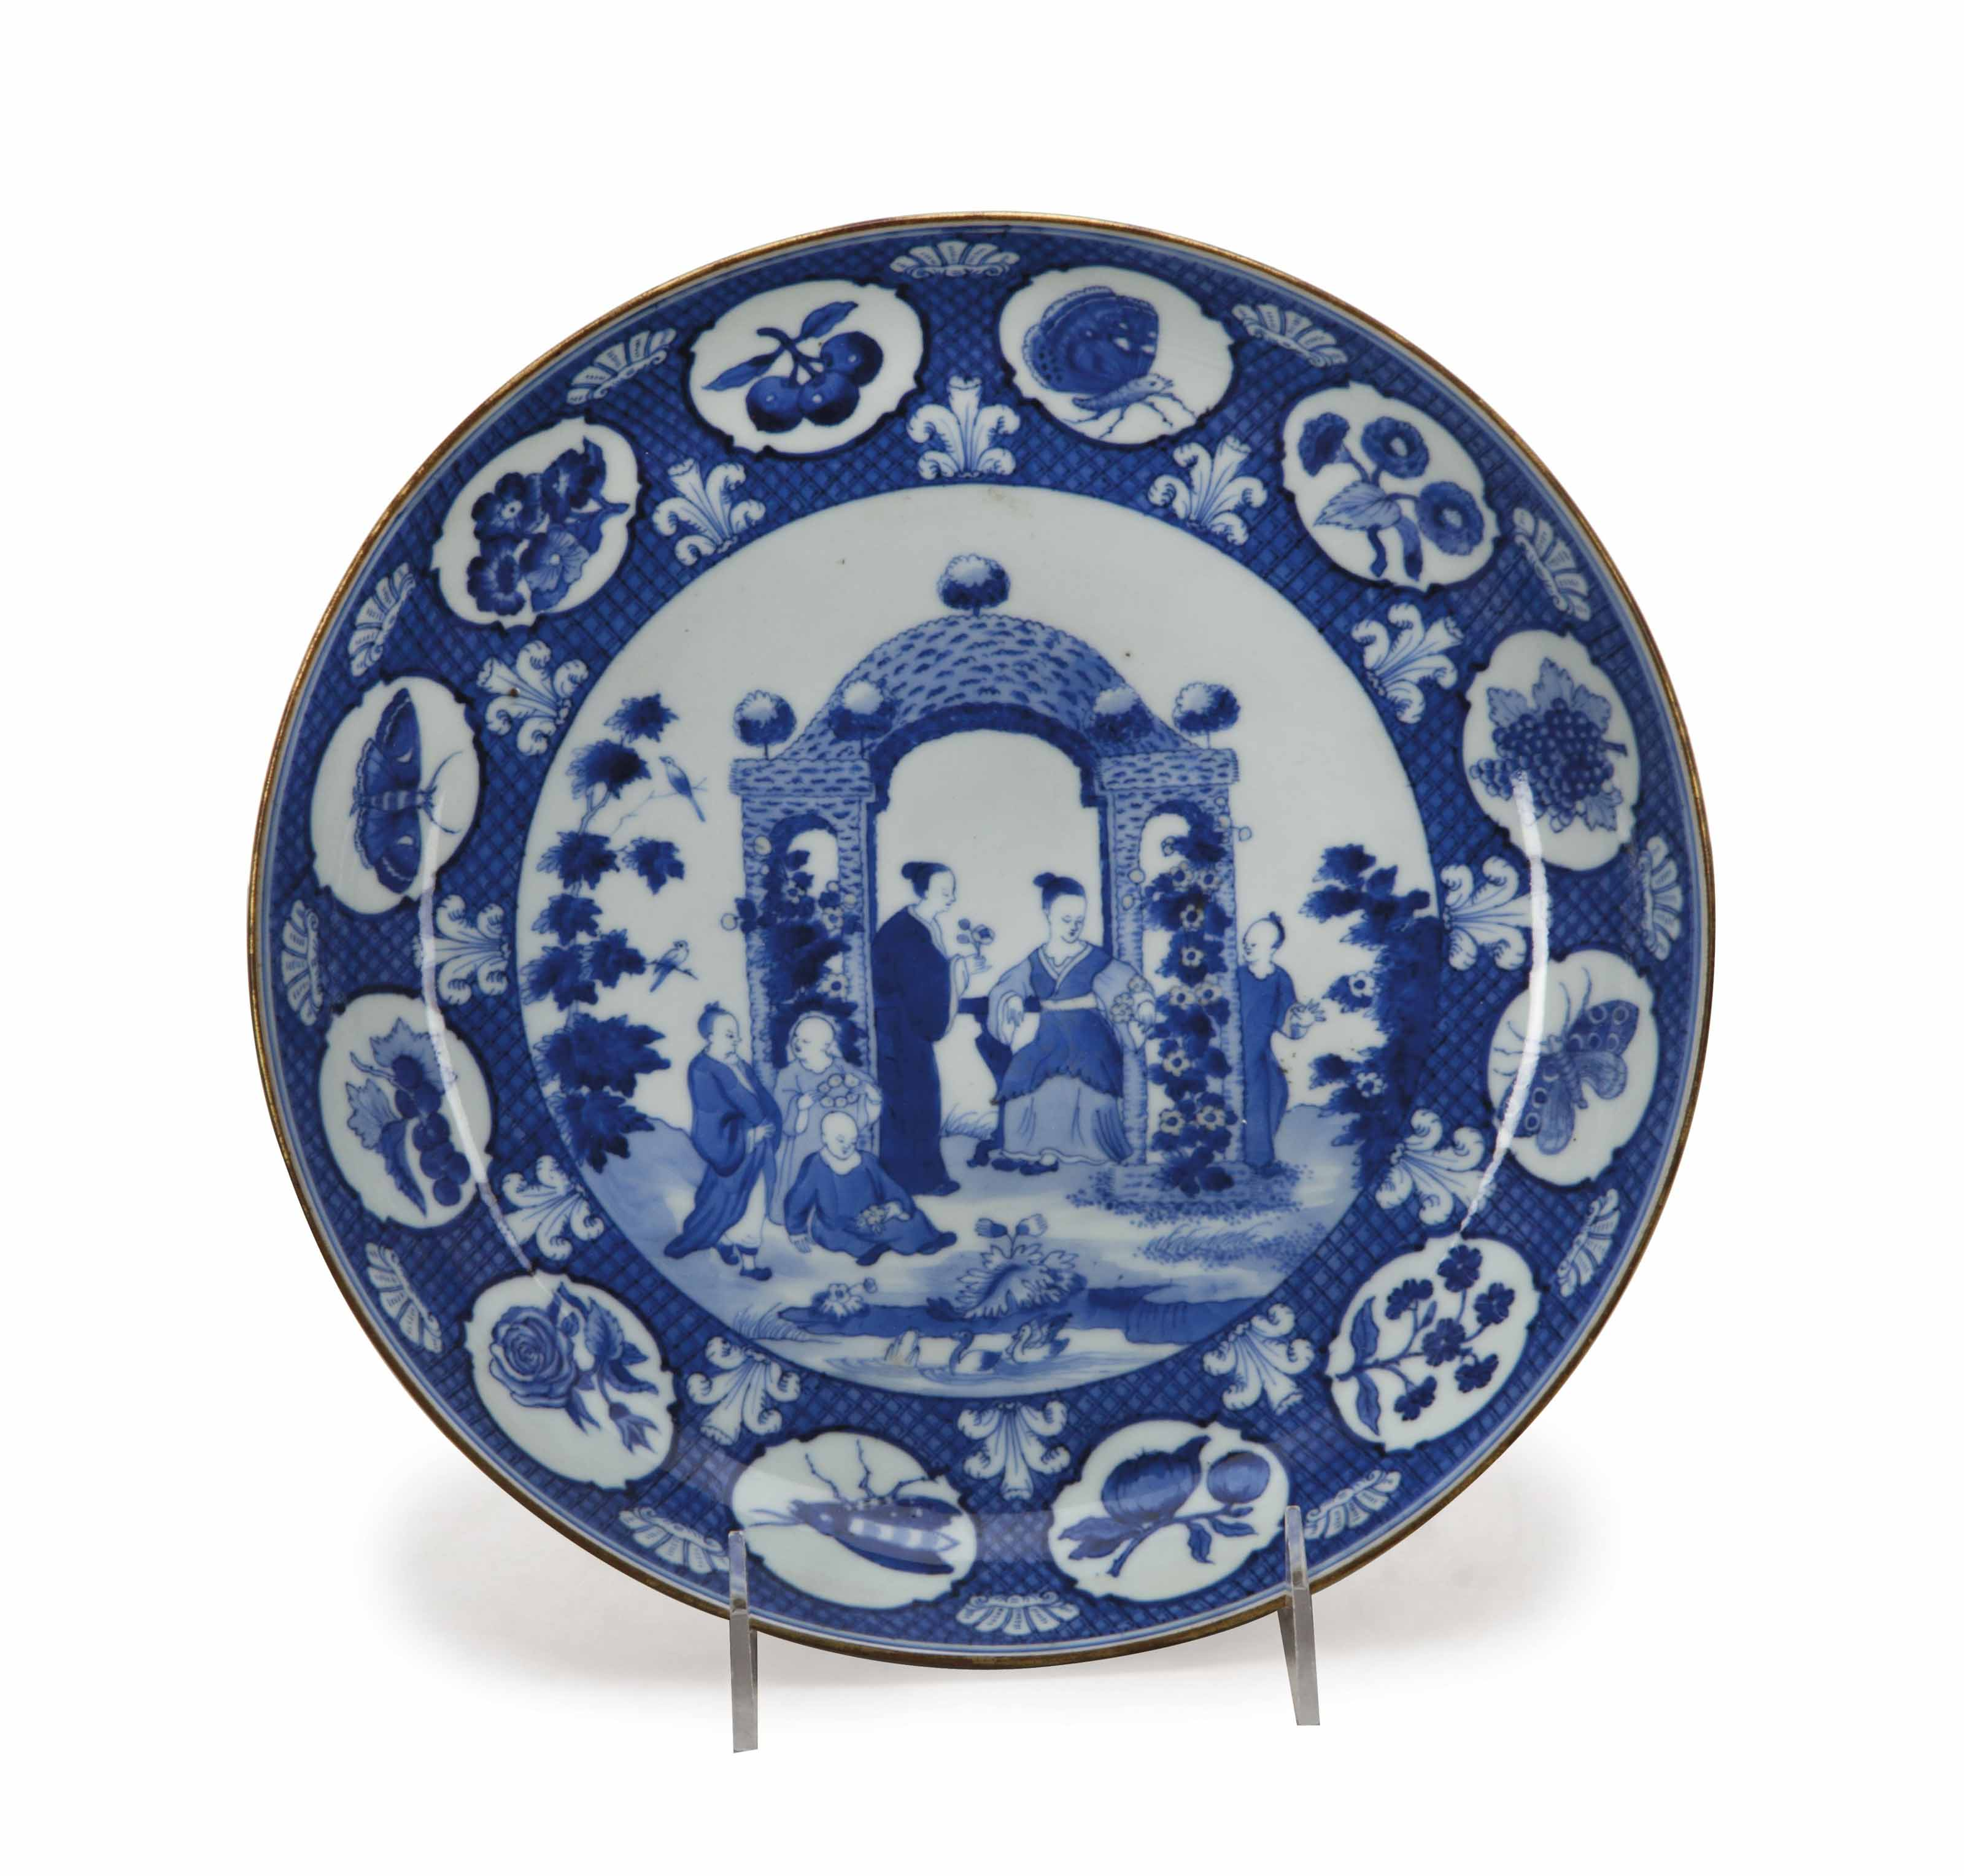 A CHINESE EXPORT BLUE AND WHITE 'PRONK' SAUCER DISH,